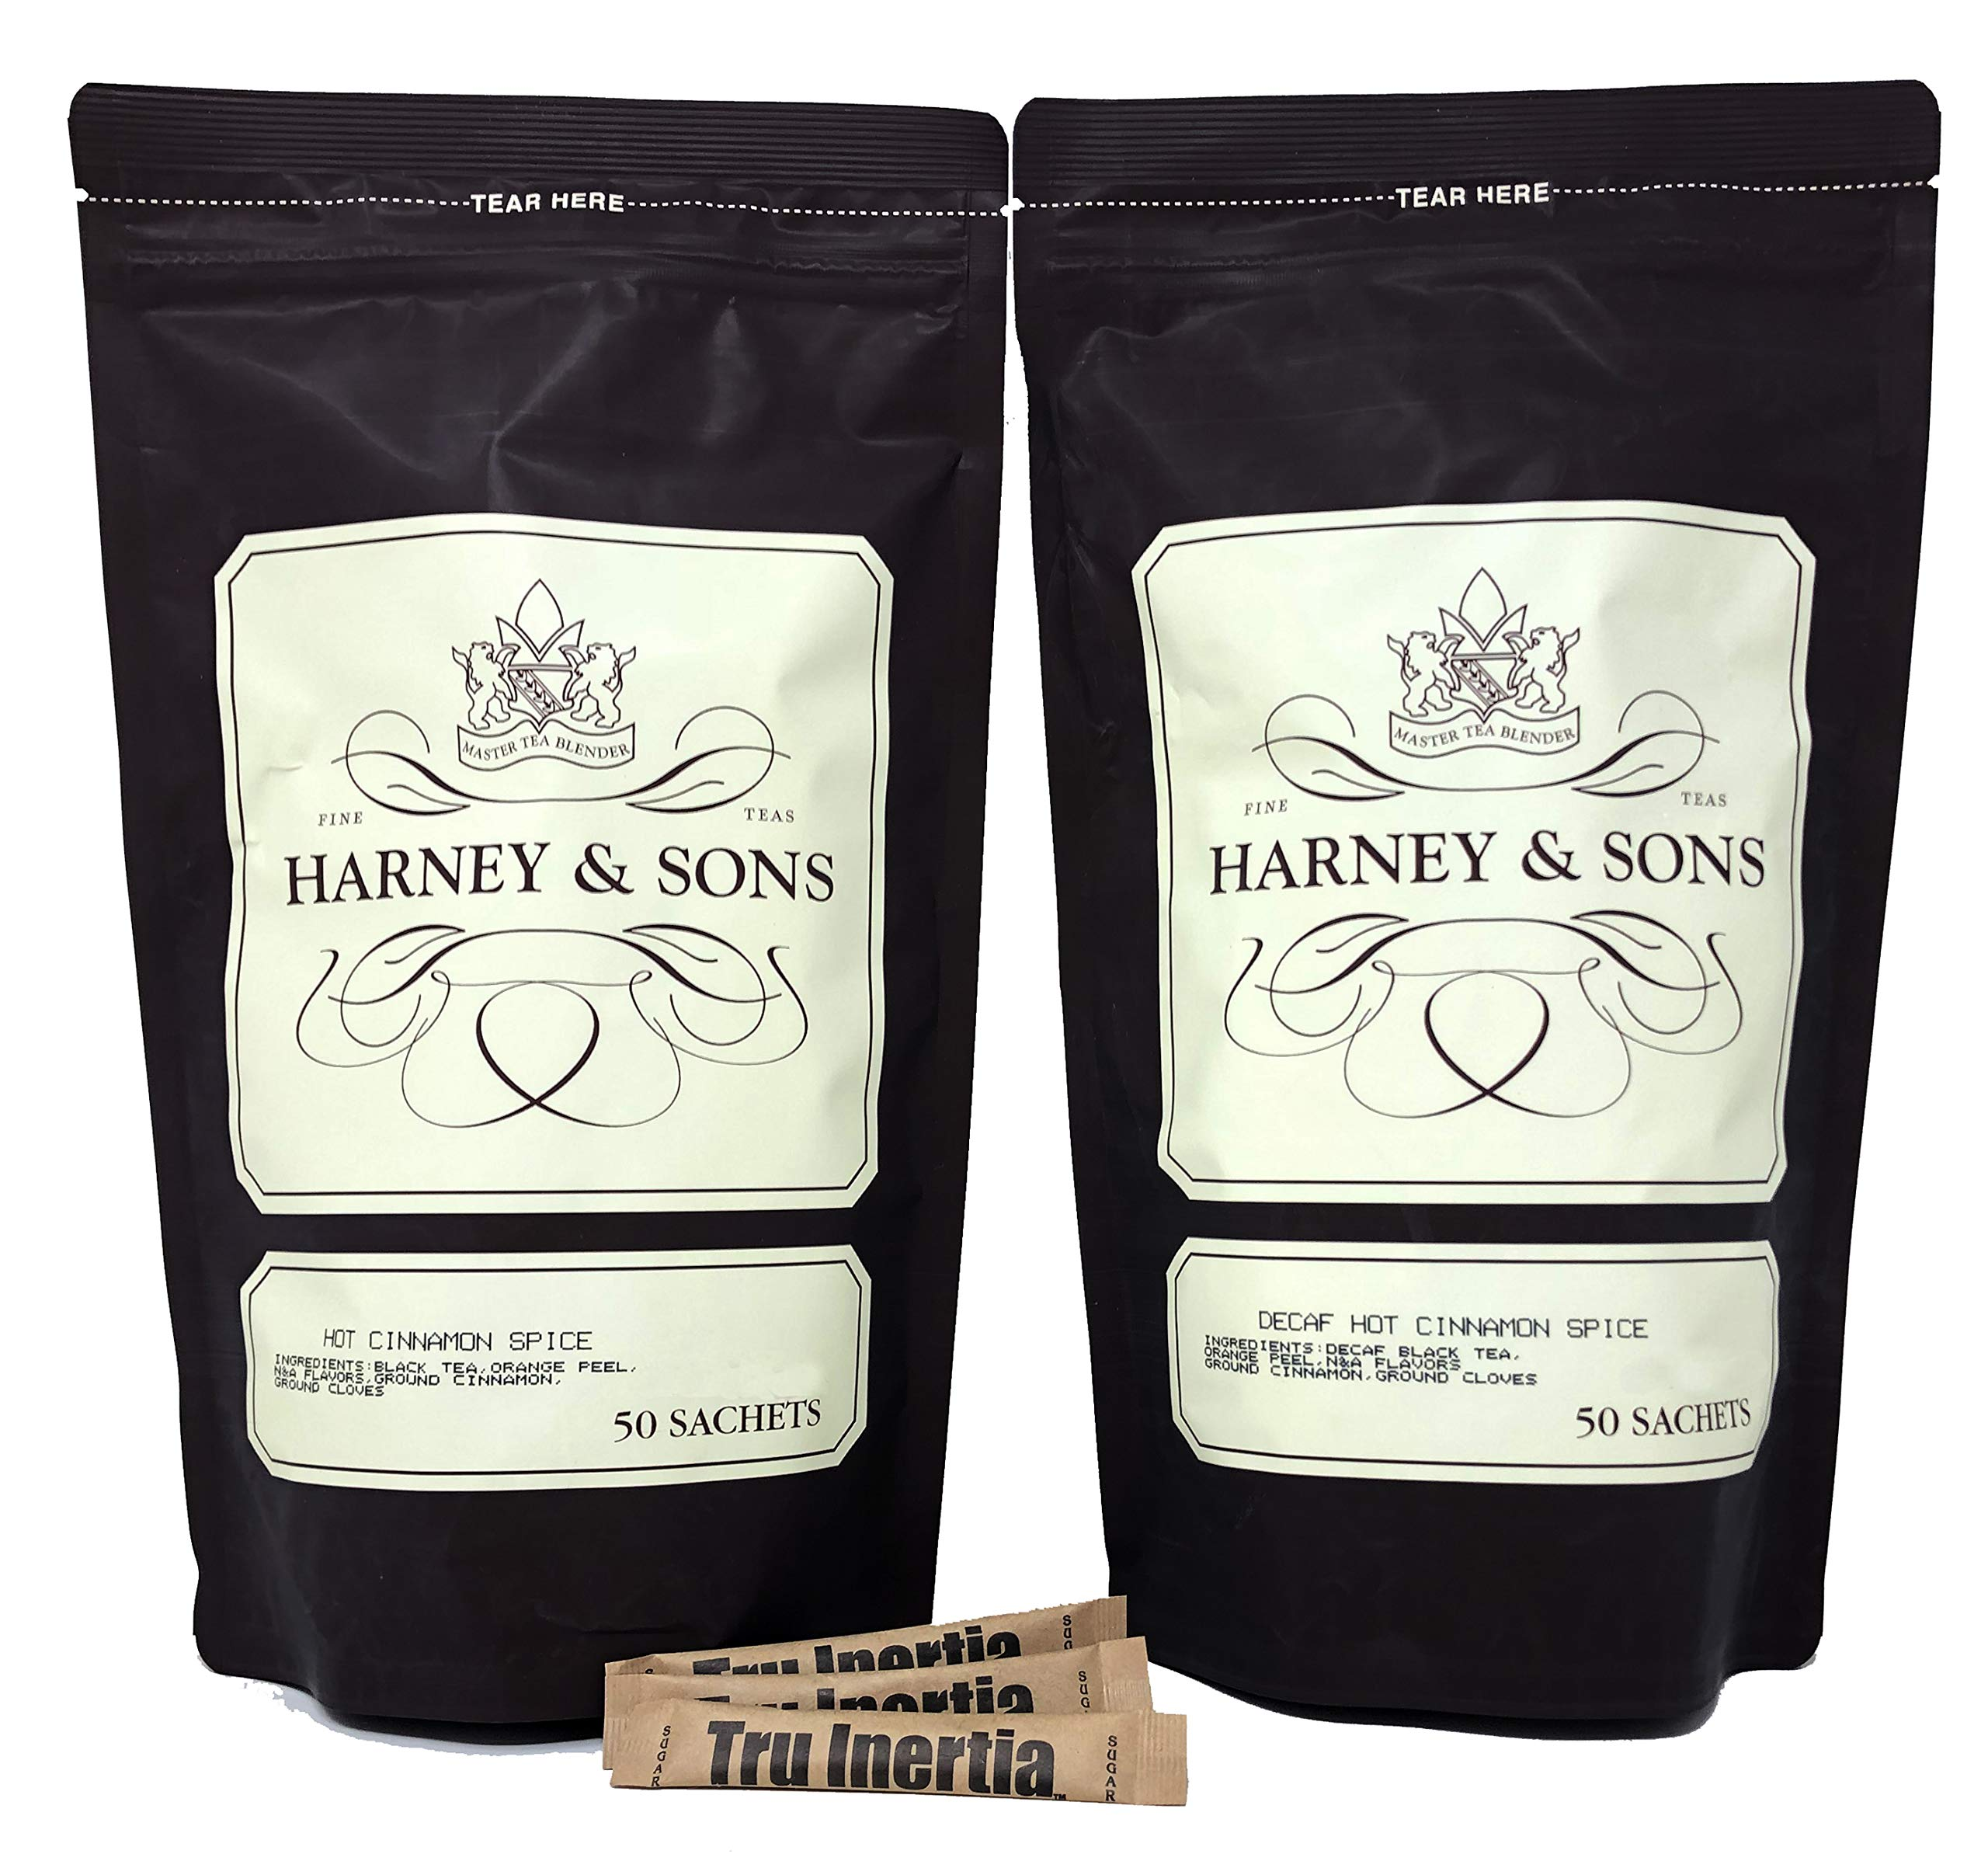 Harney & Sons Hot Cinnamon and Decaf Hot Cinnamon 50 Count Tea Sachet Bags 2 Pack - 1 Bags of 50 Sachets of Each Tea - With 3 Tru Inertia Raw Cane Sugar Tubes by Tru Inertia